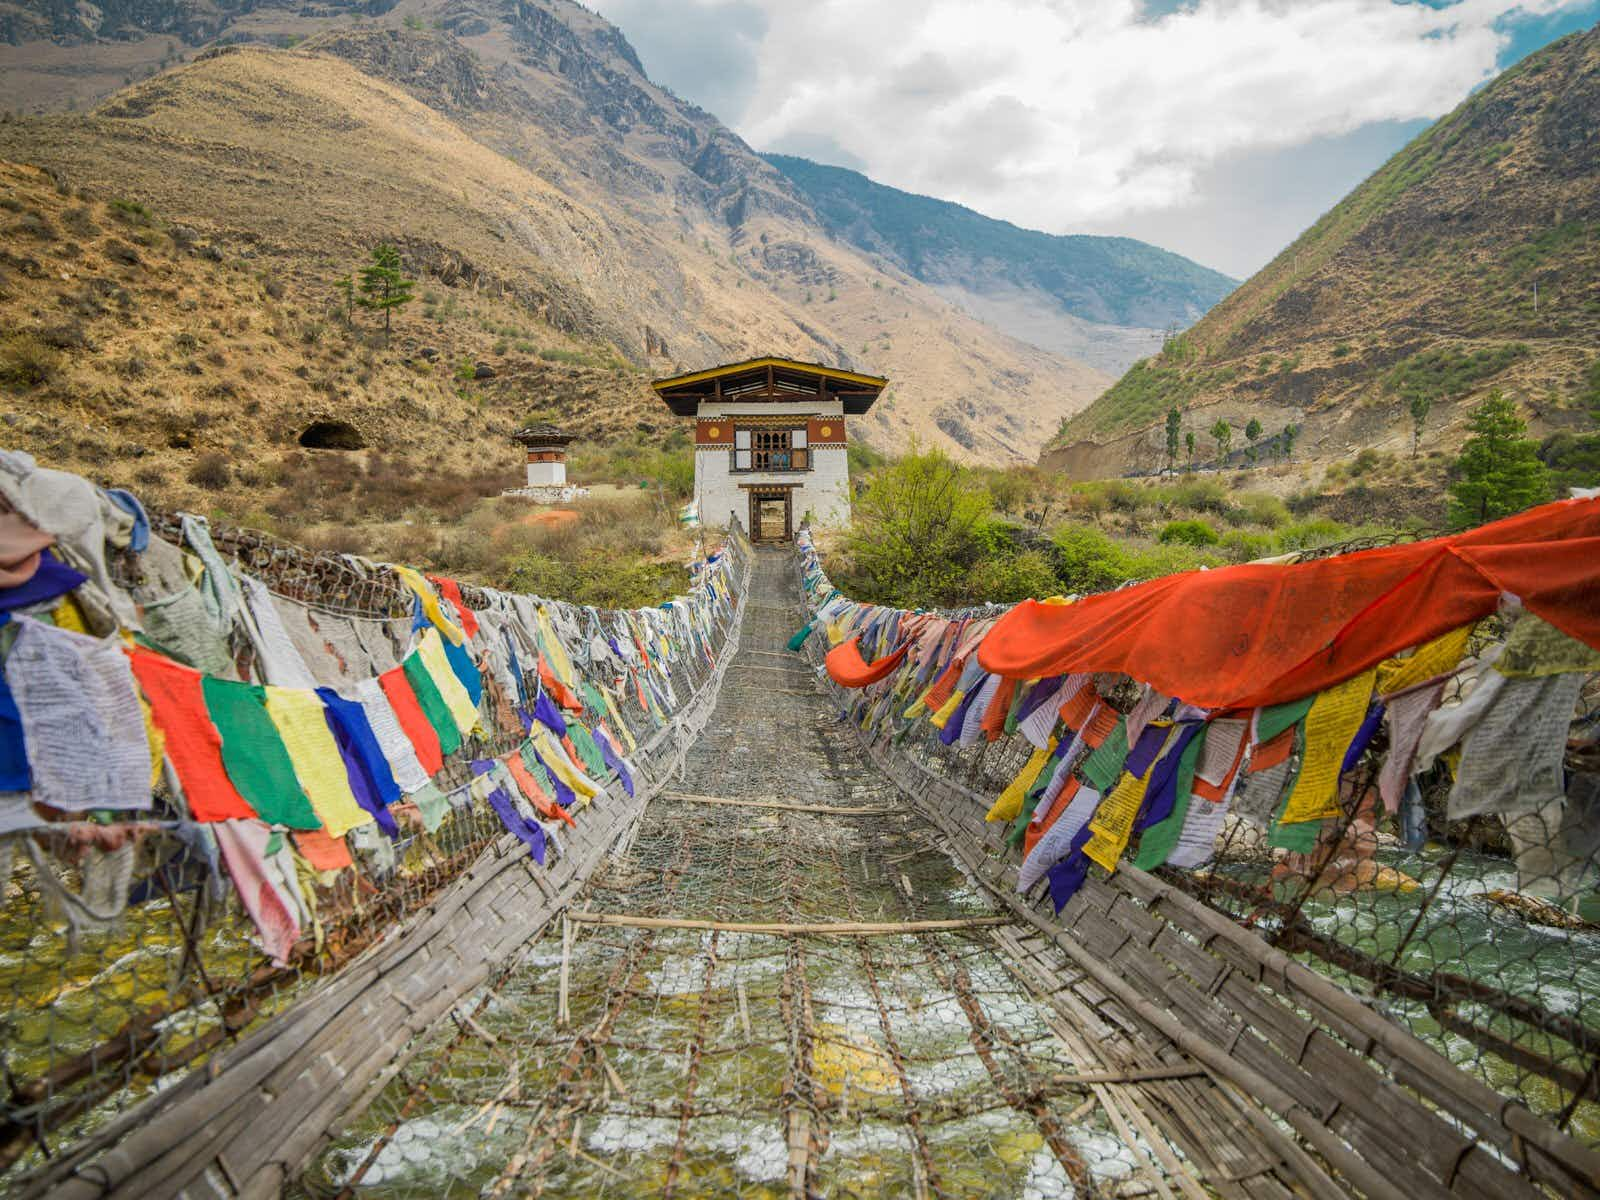 Tachog Lhakhang Iron Chain Bridge with colourful prayer flags on each side of bridge (c) Mark A Paulda/Getty Images